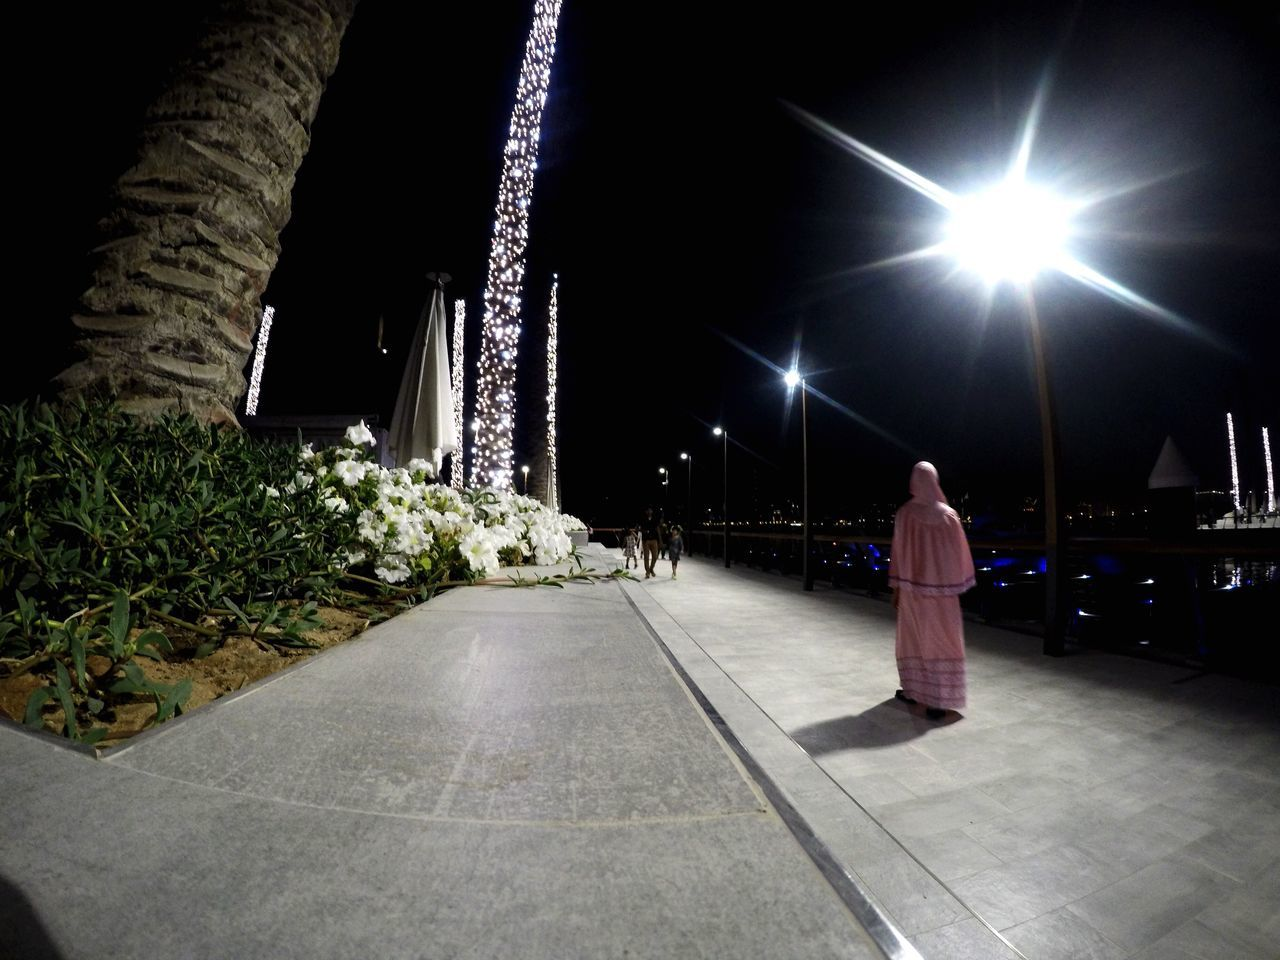 night, illuminated, rear view, real people, full length, standing, indoors, one person, people